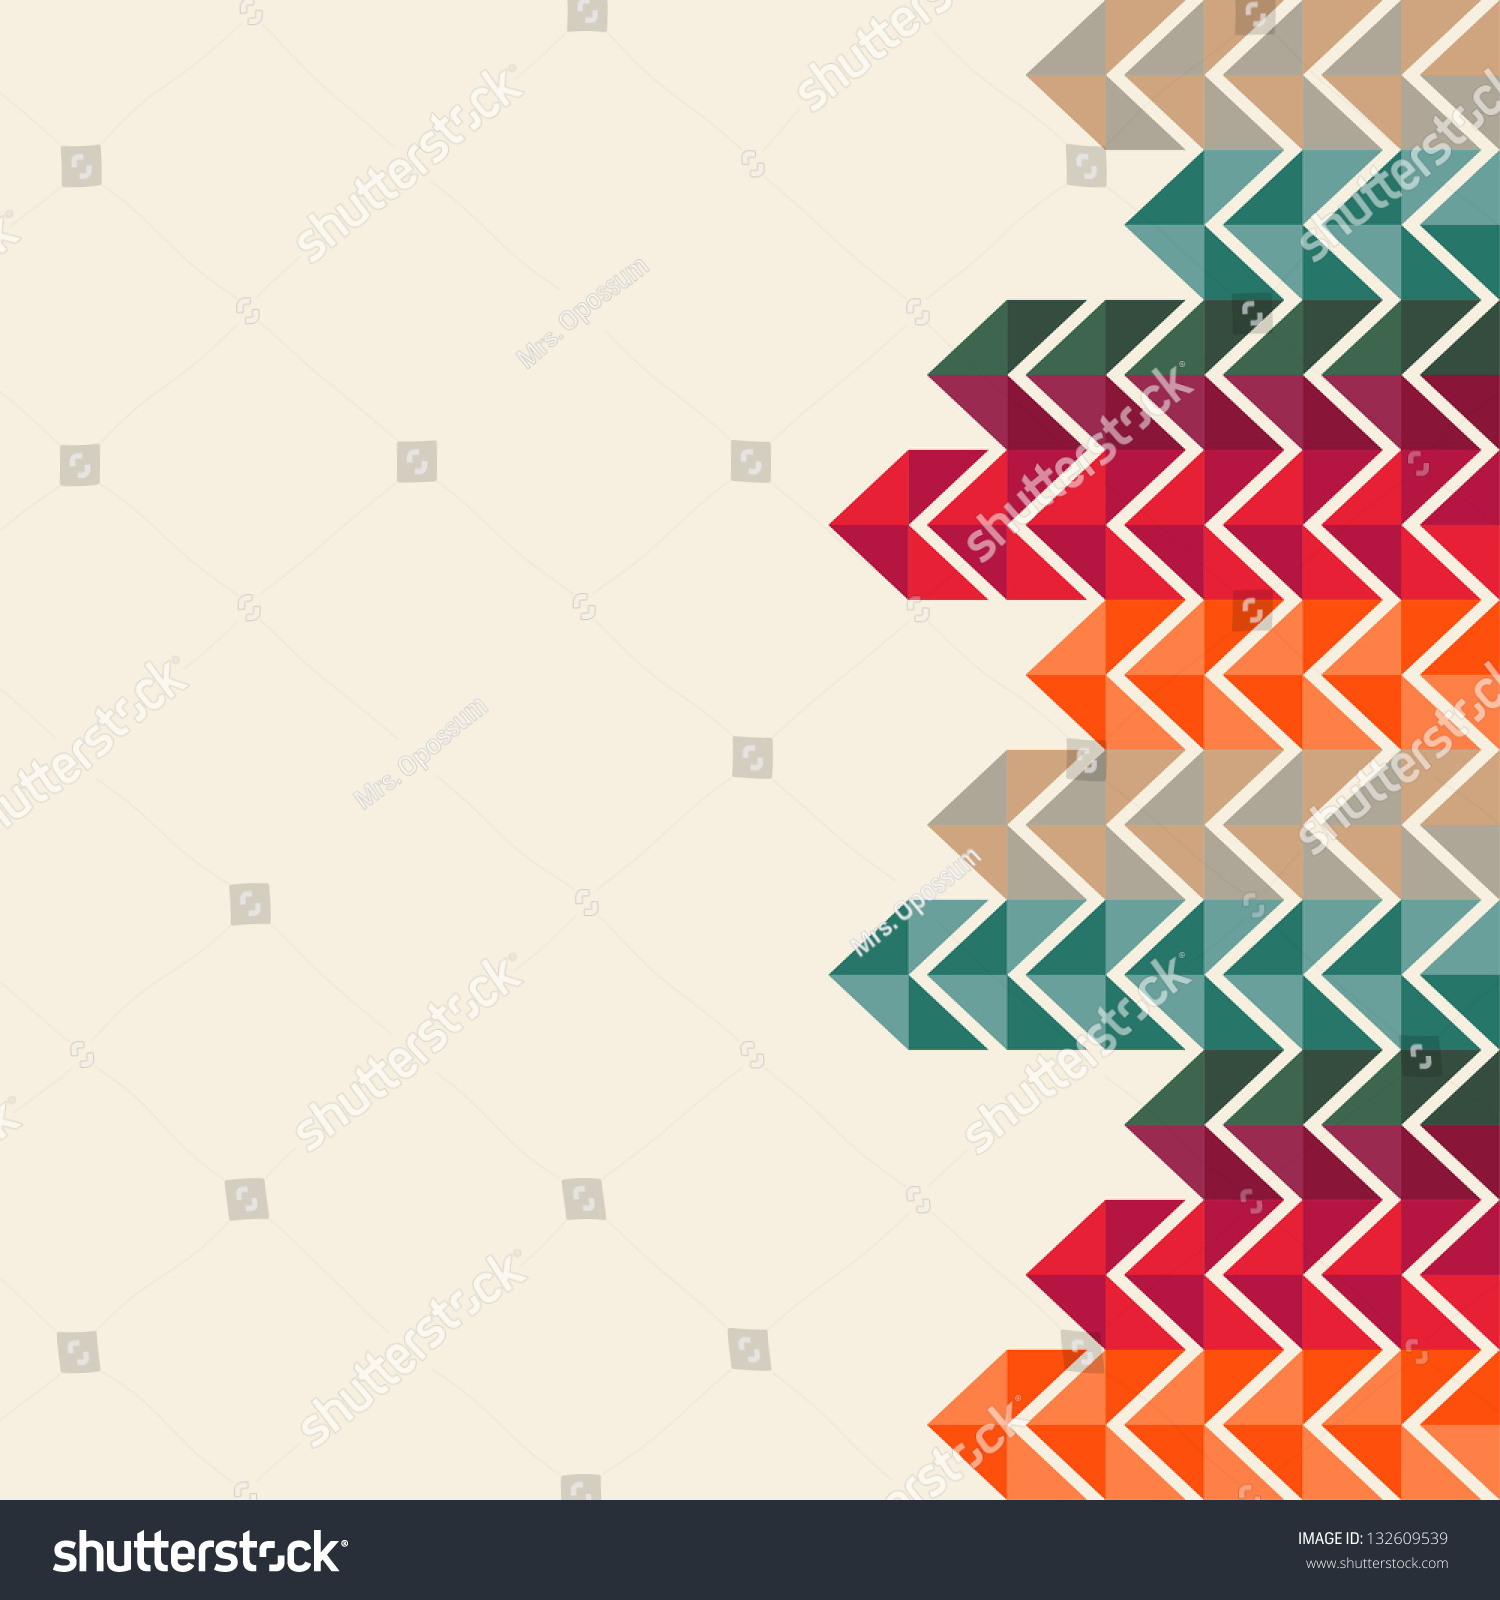 stock vector geometric background - photo #1